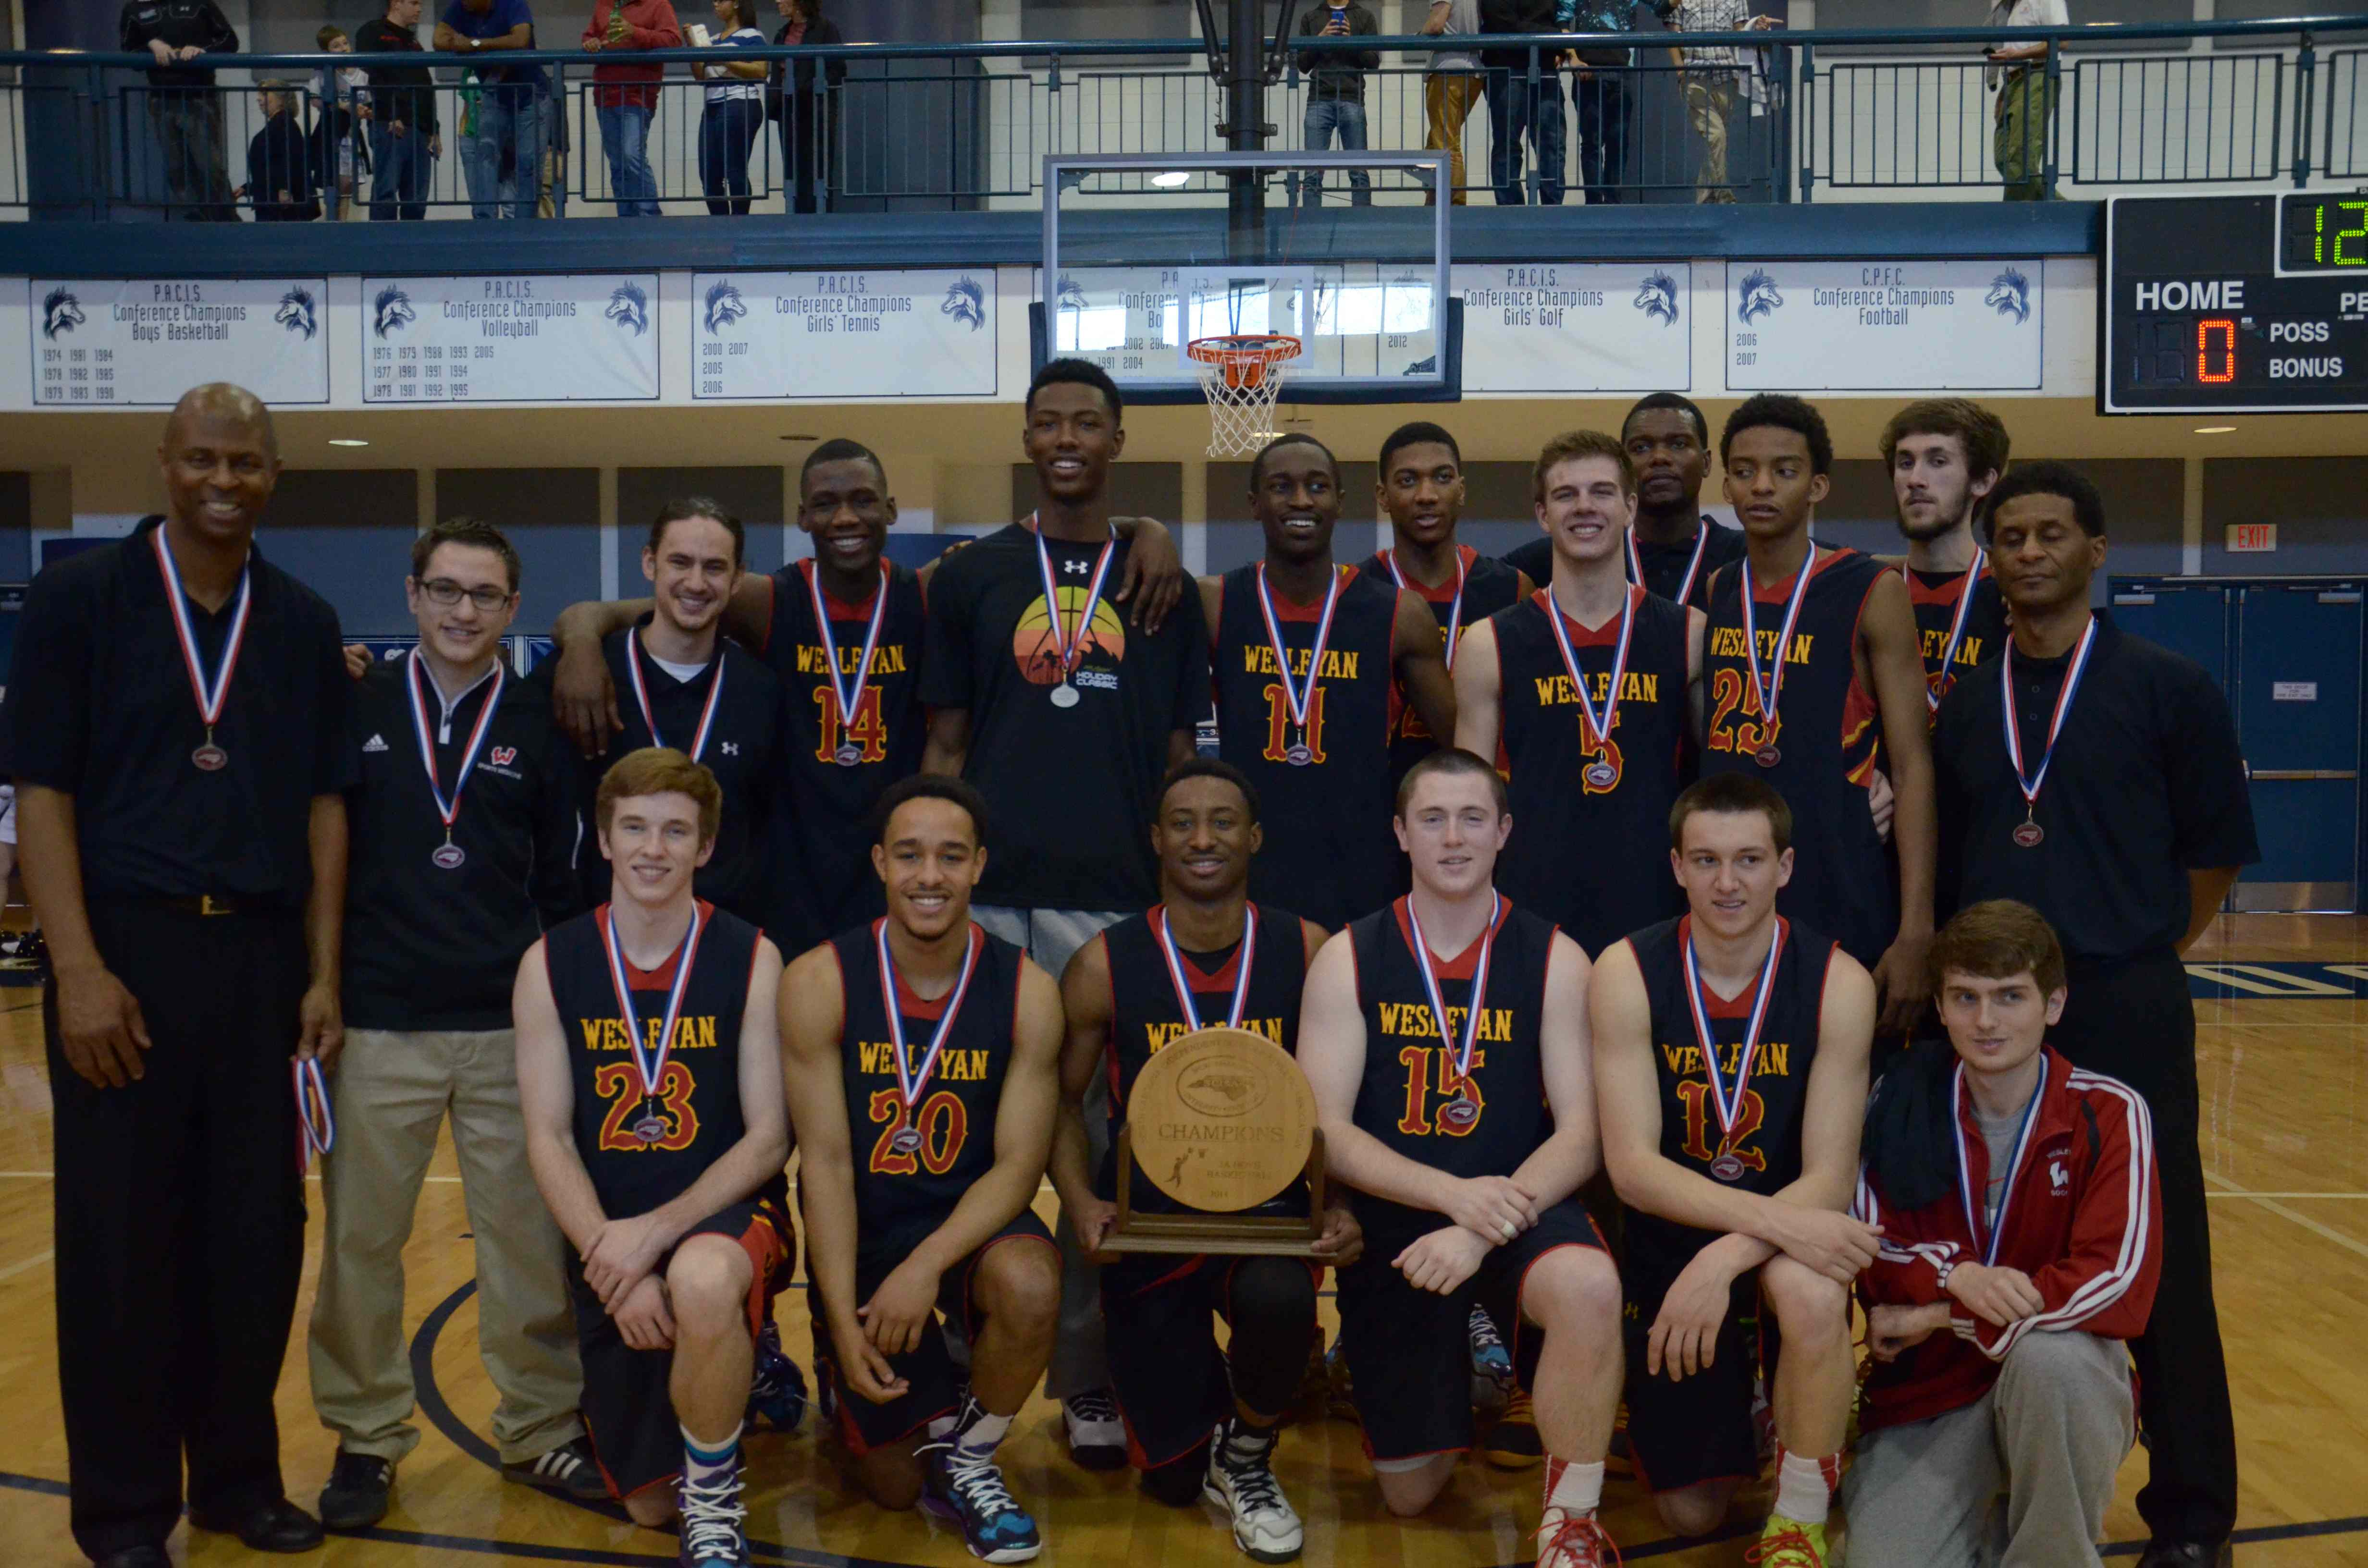 2004 State Champs again